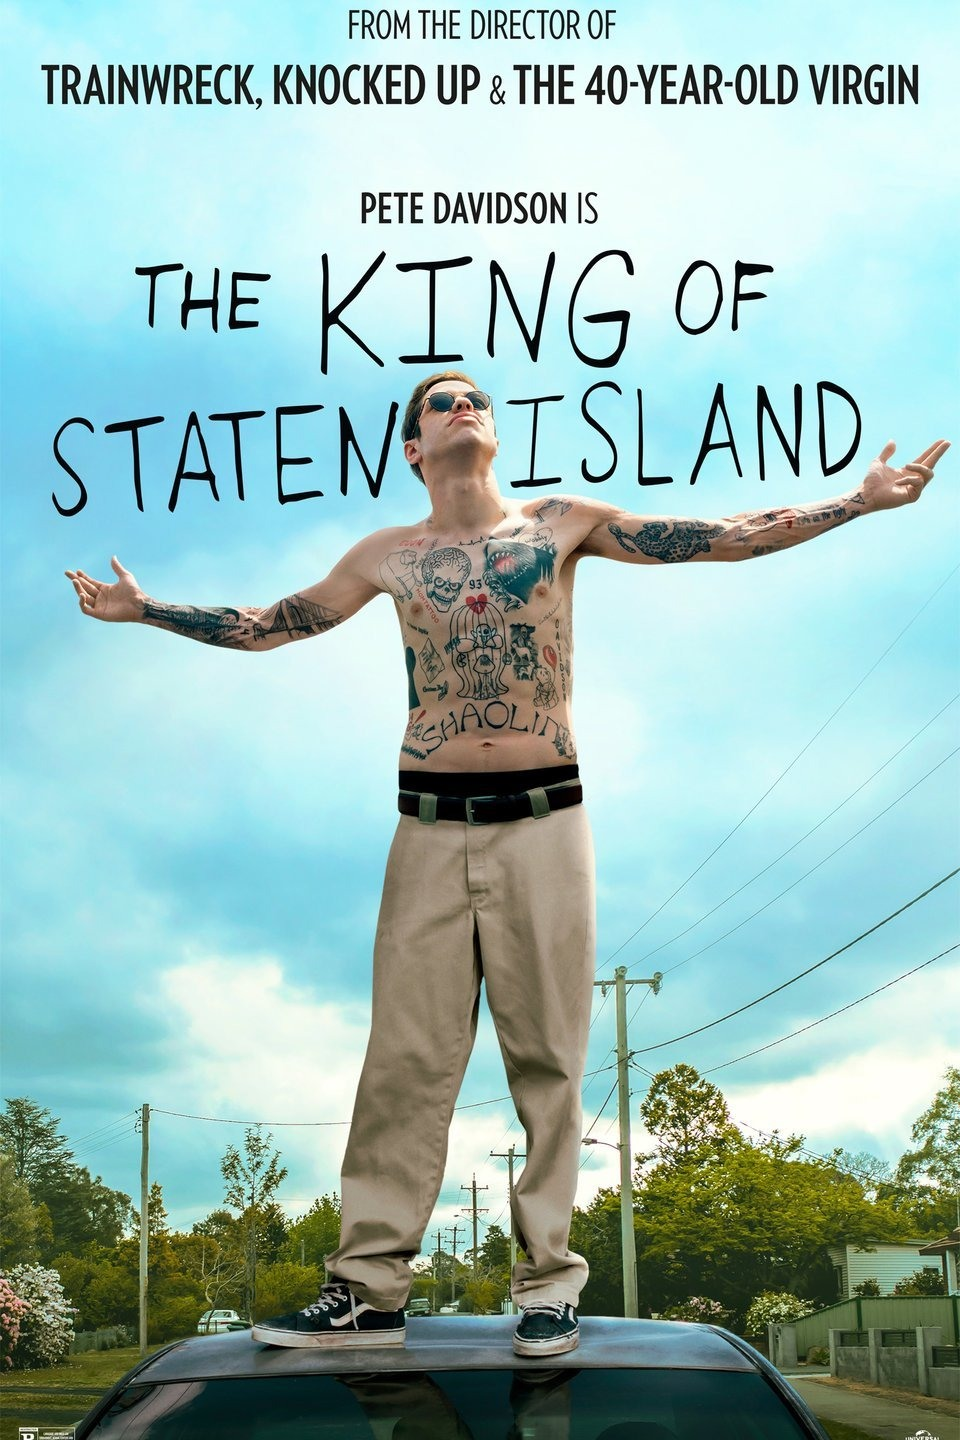 The King of Staten Island film poster